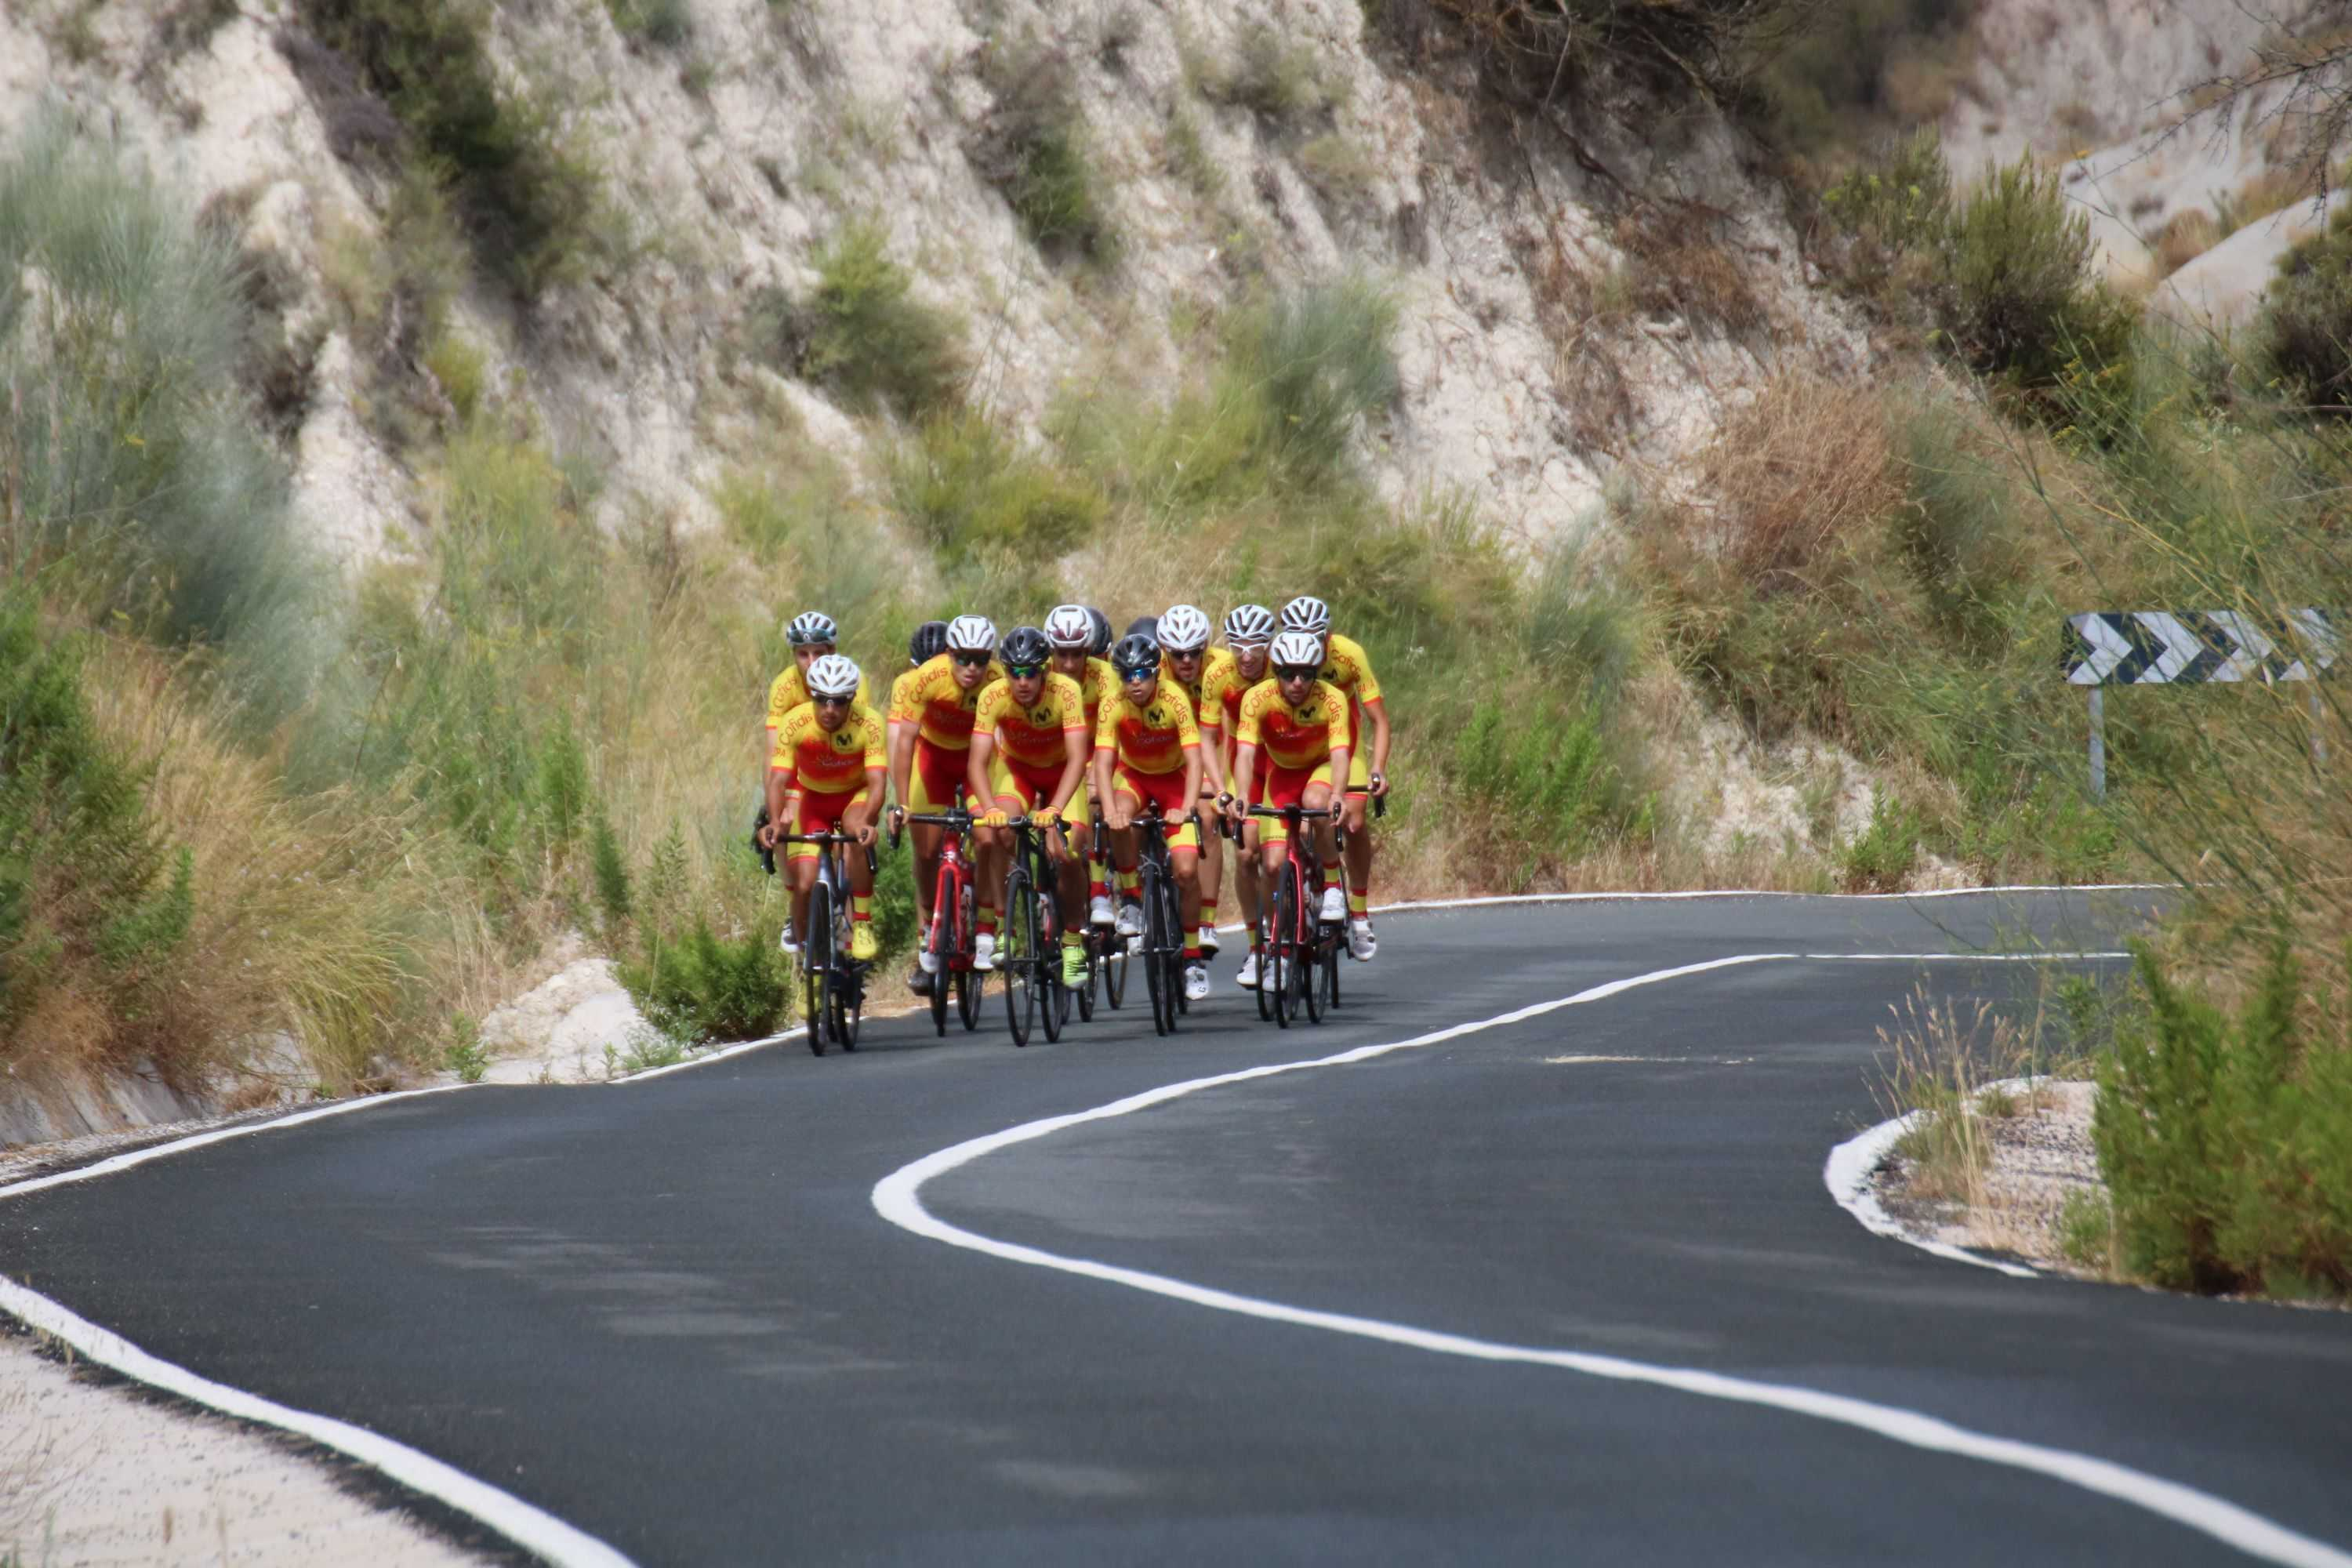 #TeamESPCiclismo - Concentración sub23 masc. Altea, julio 2020